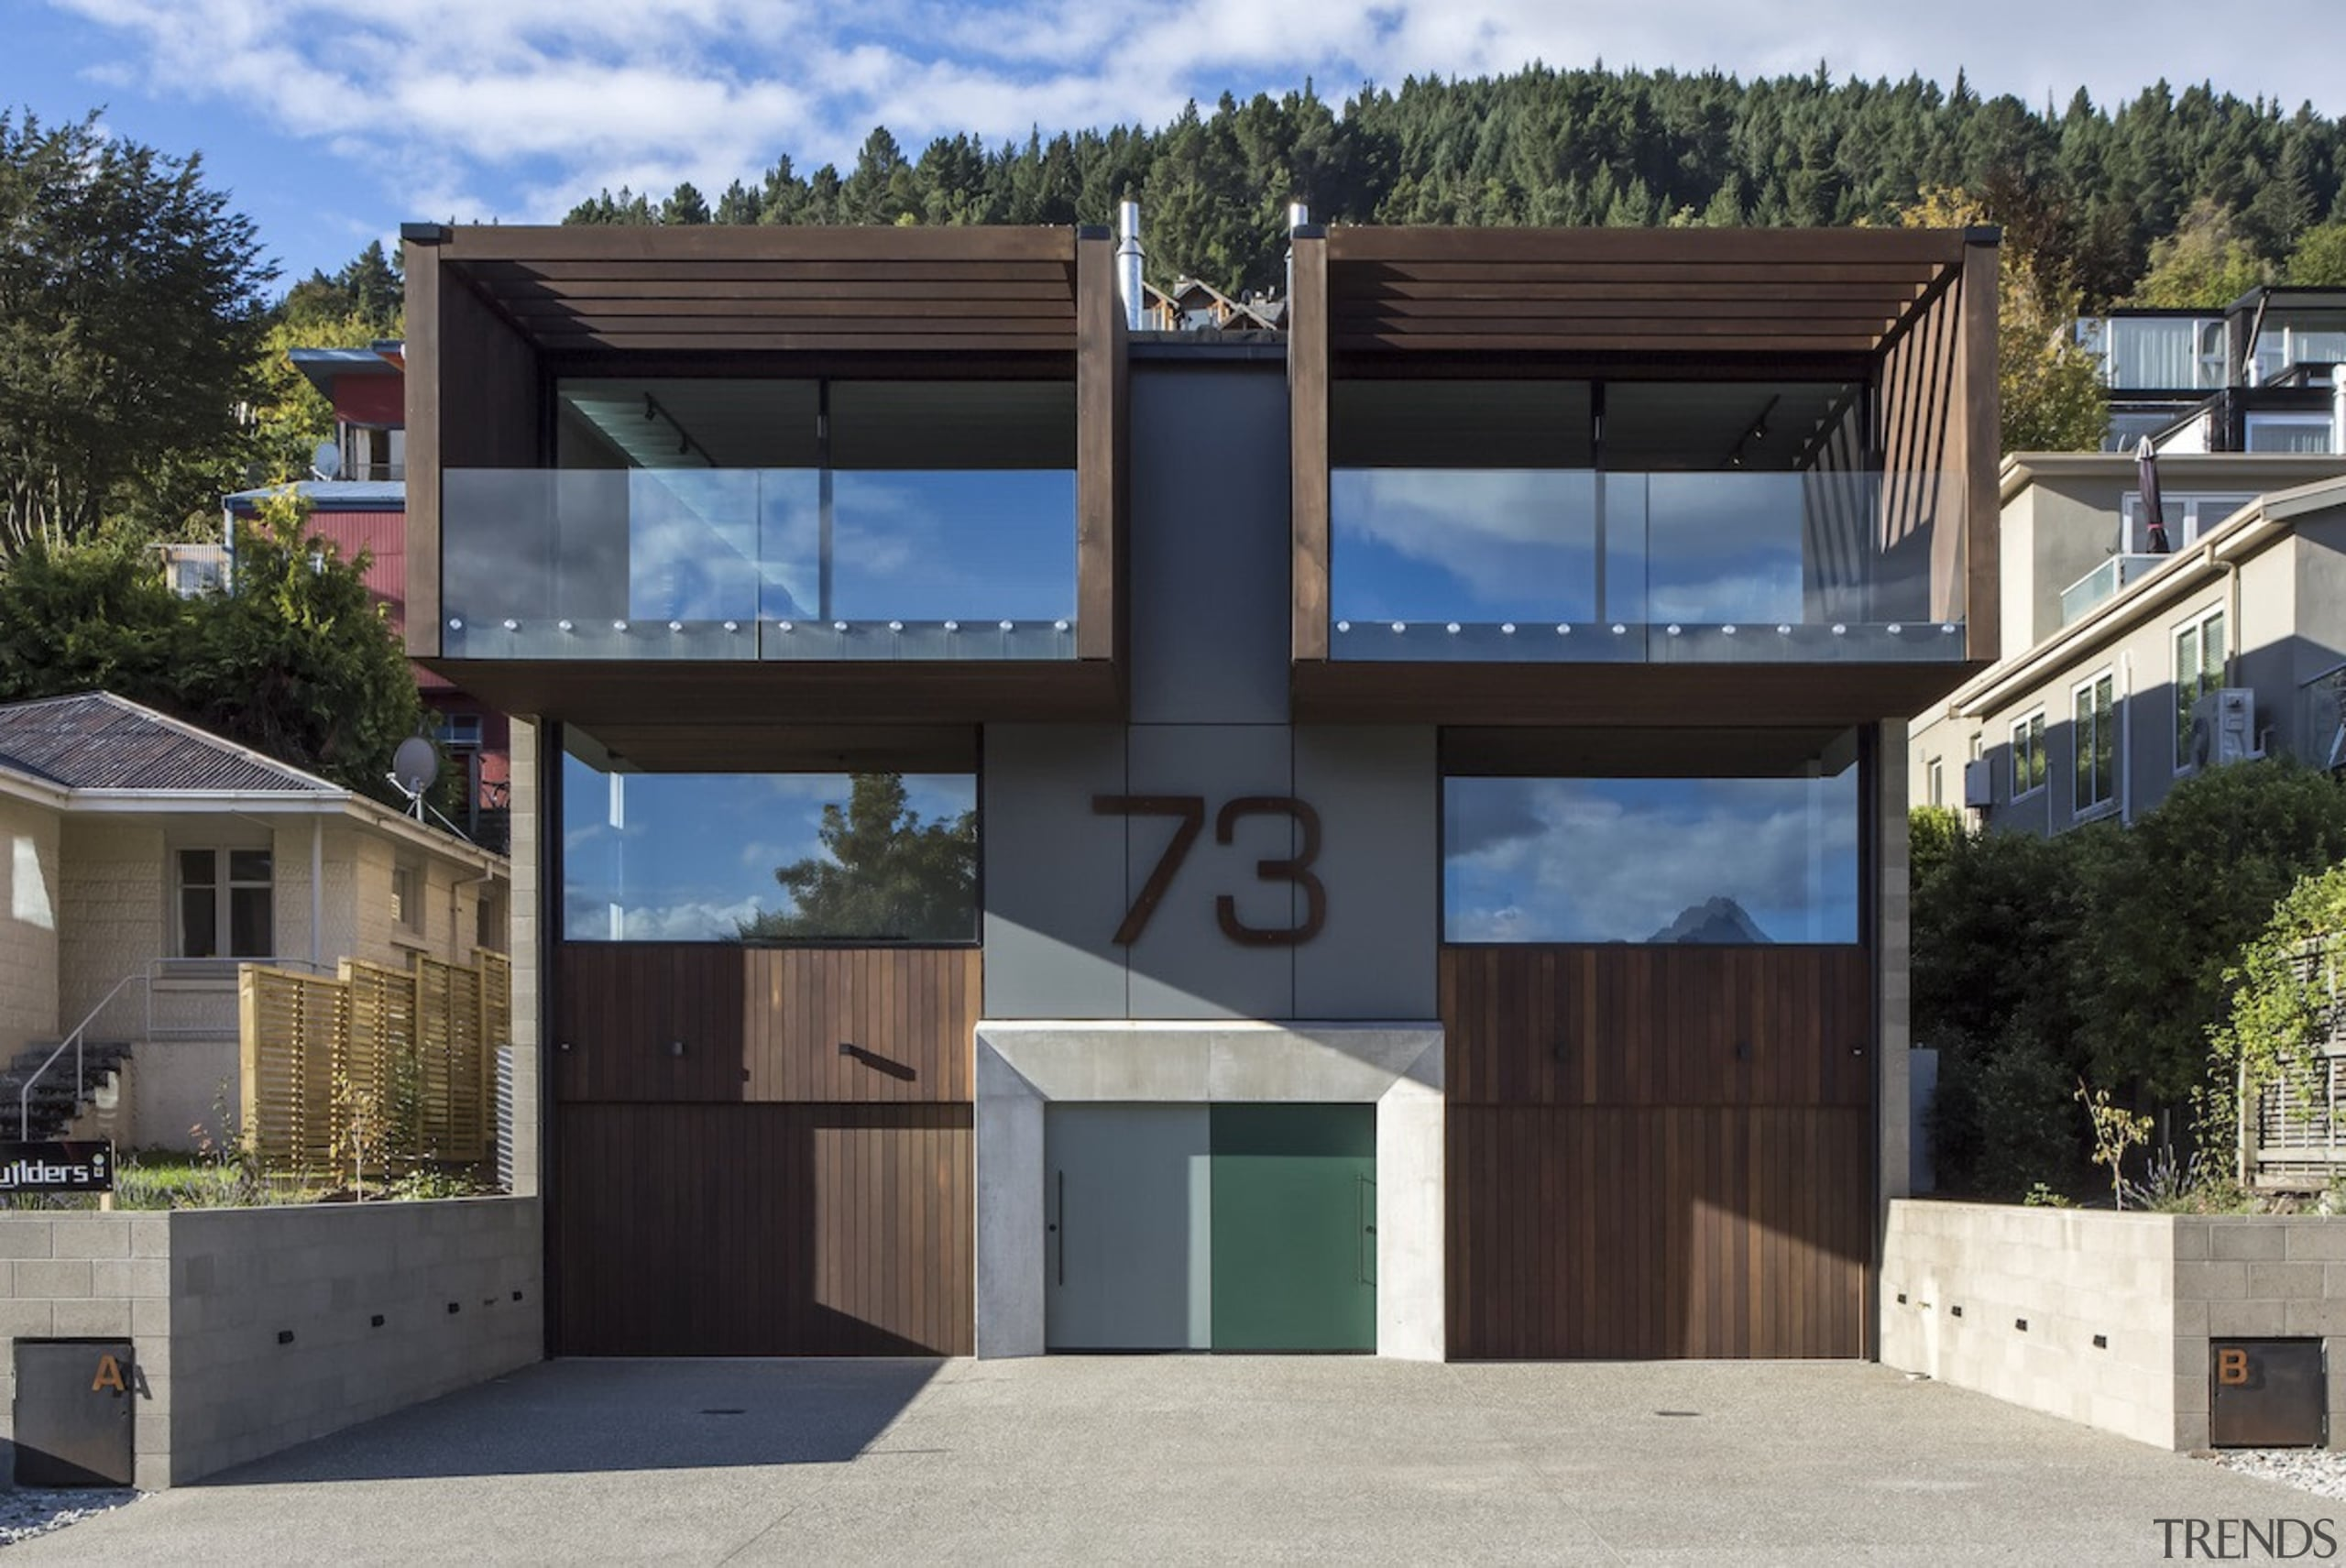 Arrowtown-based Bennie Builders was the only Southern Lakes architecture, building, elevation, facade, home, house, property, real estate, residential area, black, gray